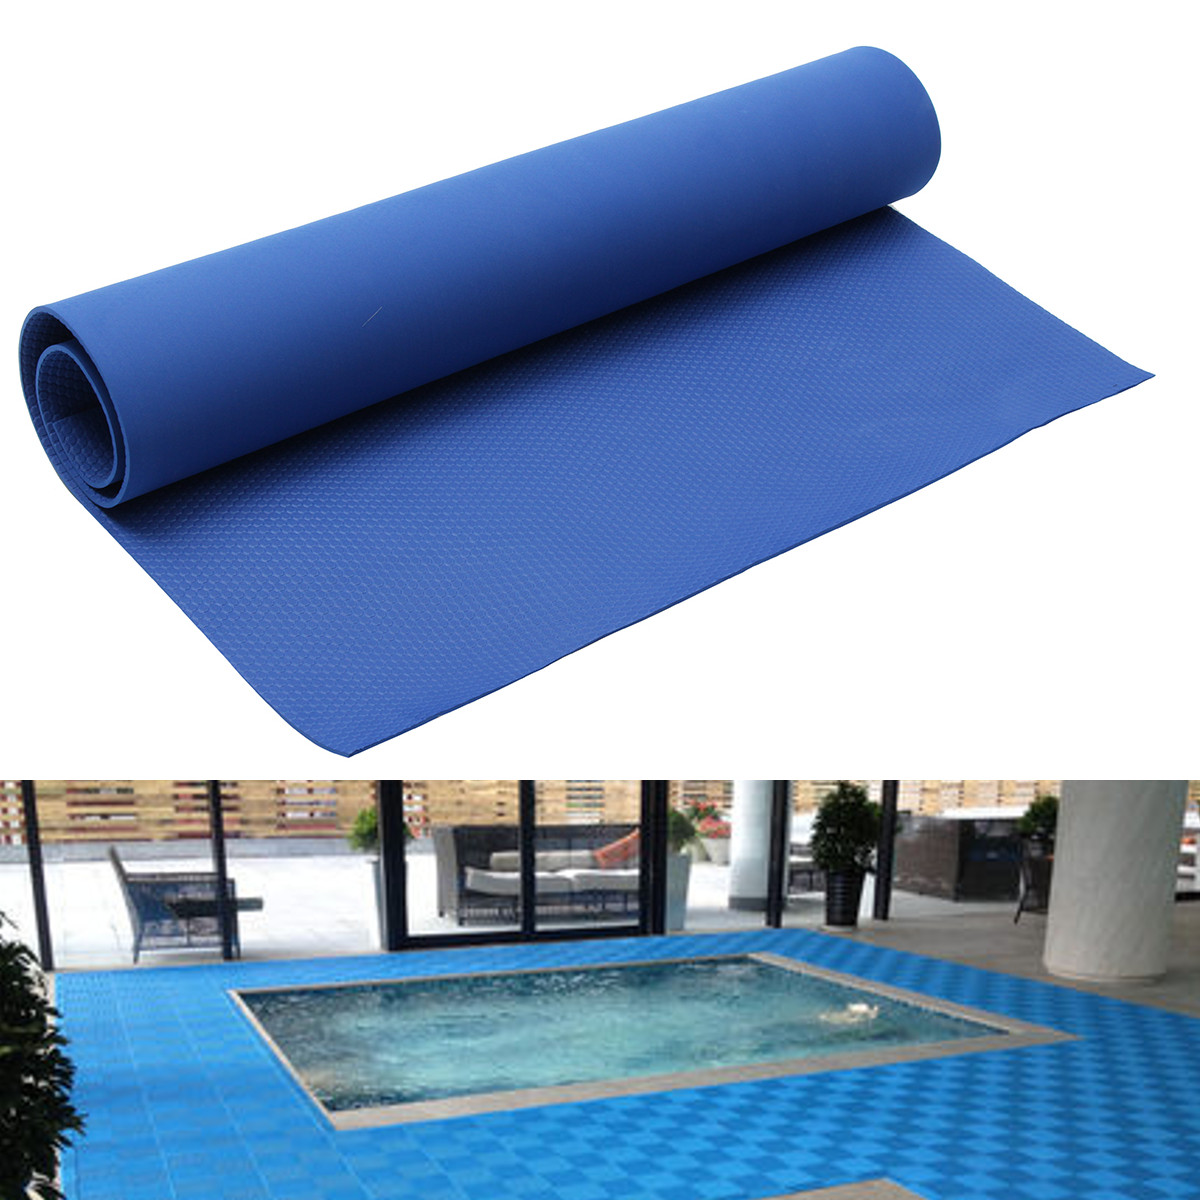 US $7.29 17% OFF Blue Above Ground Swimming Pool Hydro Tools Ladder Step  Anti skid Pad Mat Liner Non Slip Protection Pool Accessories 4 Sizes-in  Pool ...